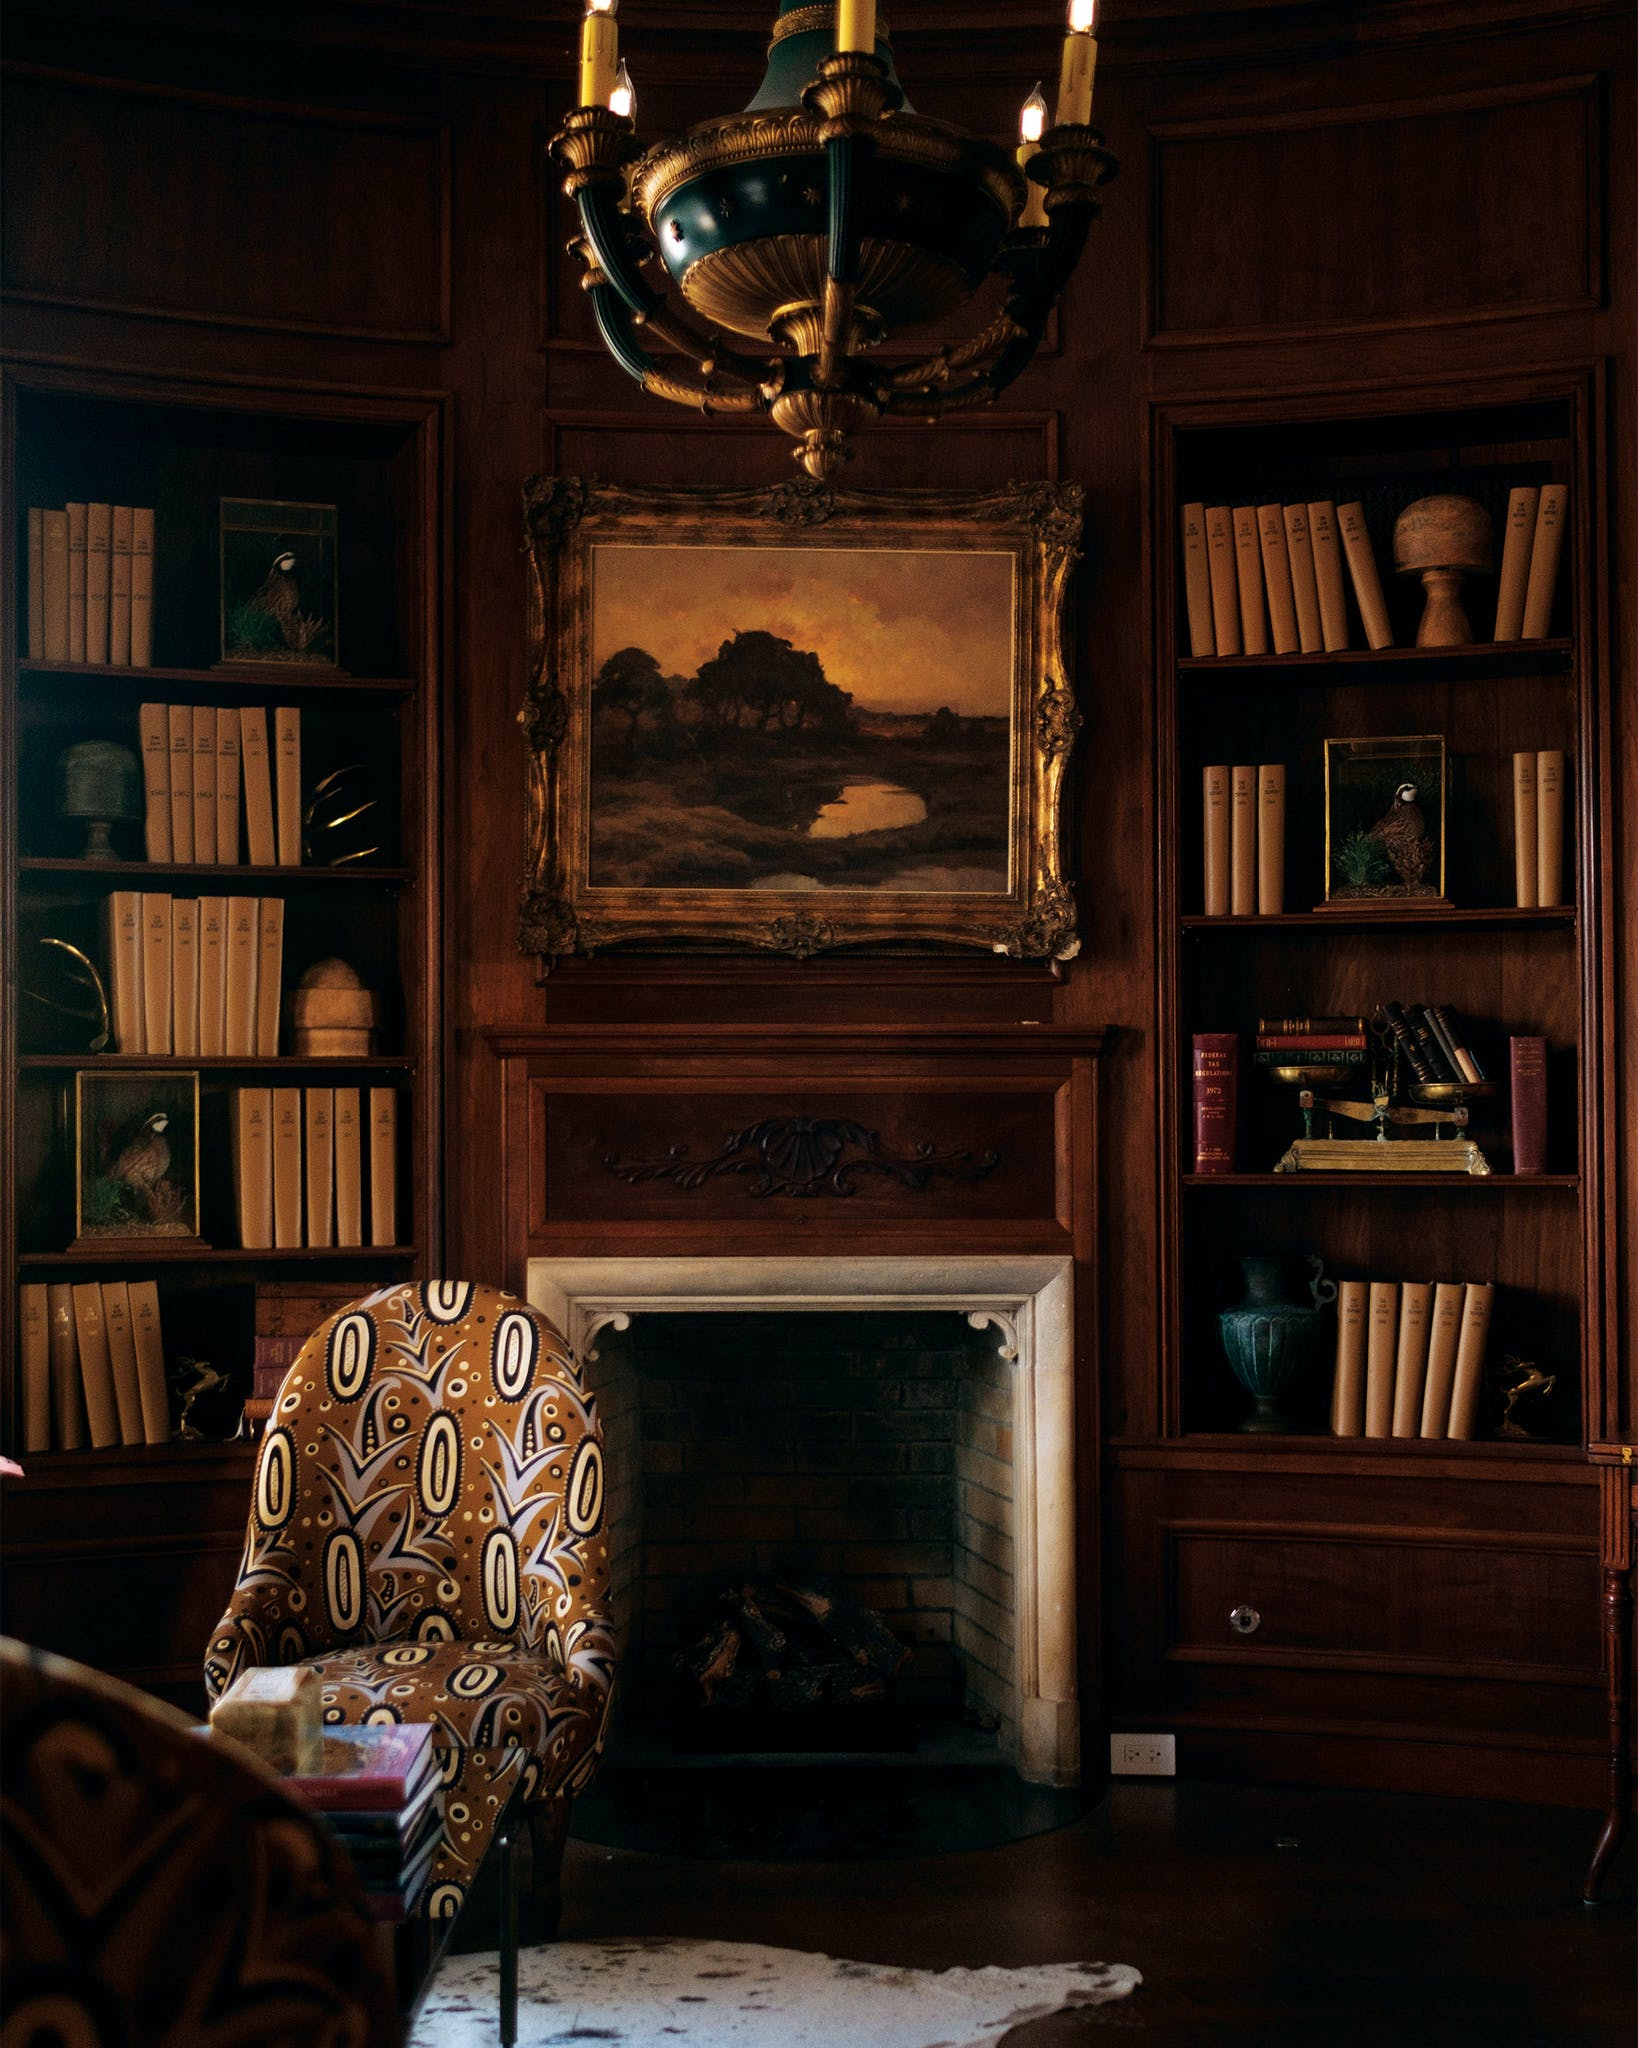 It would be easy to believe the book-lined shelves have been there all this time, but they were curated by Fulk to include a mix of Texan- and European-inspired titles that might have delighted the estate's original owners, who were avid travelers.